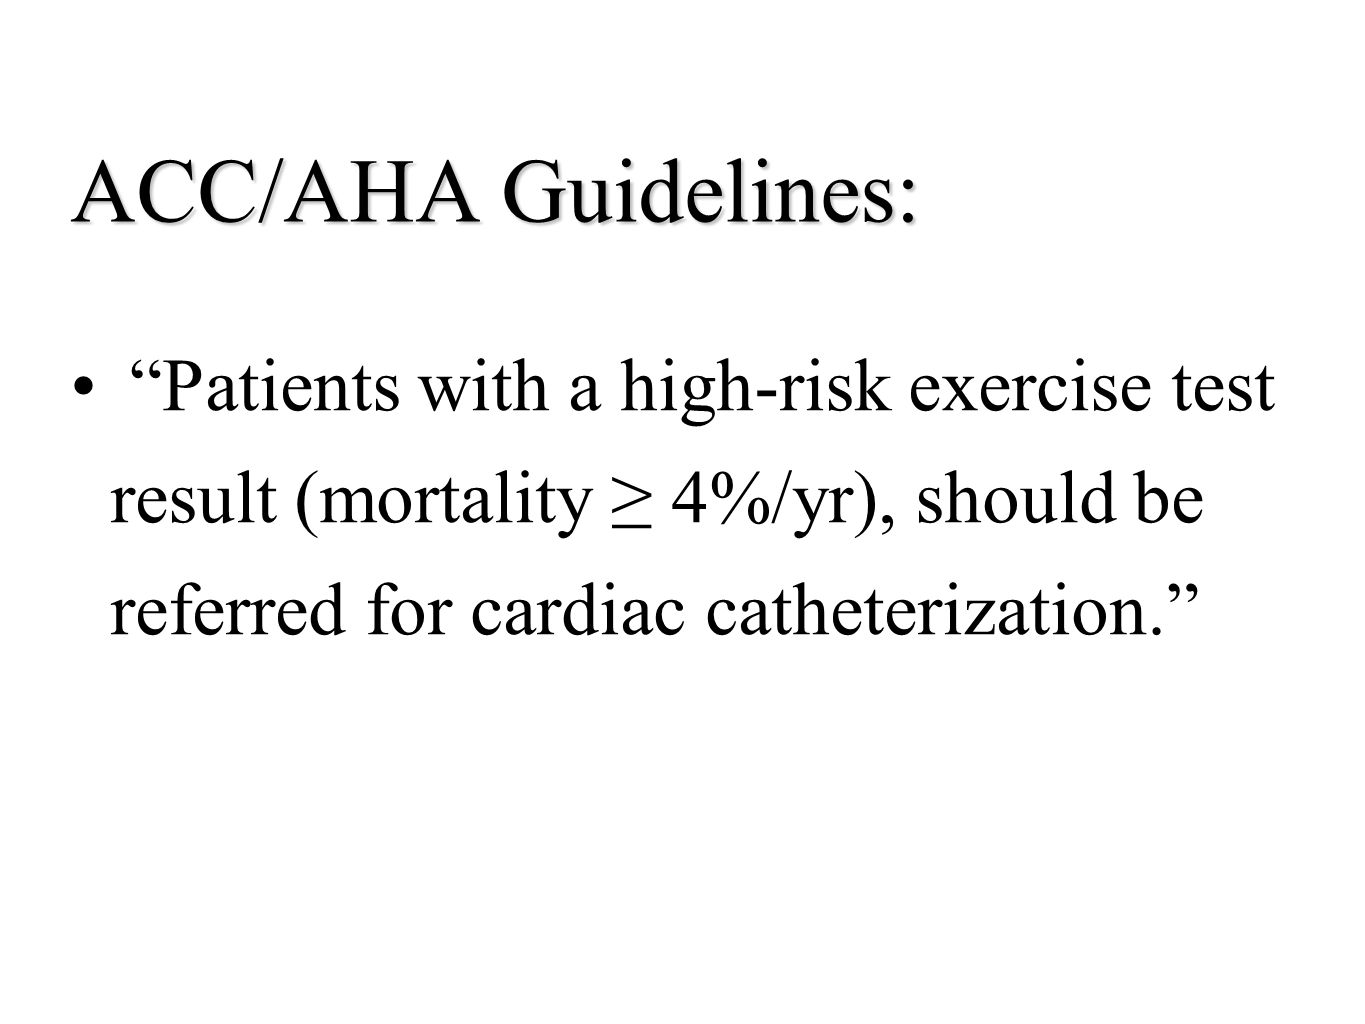 """ACC/AHA Guidelines: """"Patients with a high-risk exercise test result (mortality ≥ 4%/yr), should be referred for cardiac catheterization."""""""